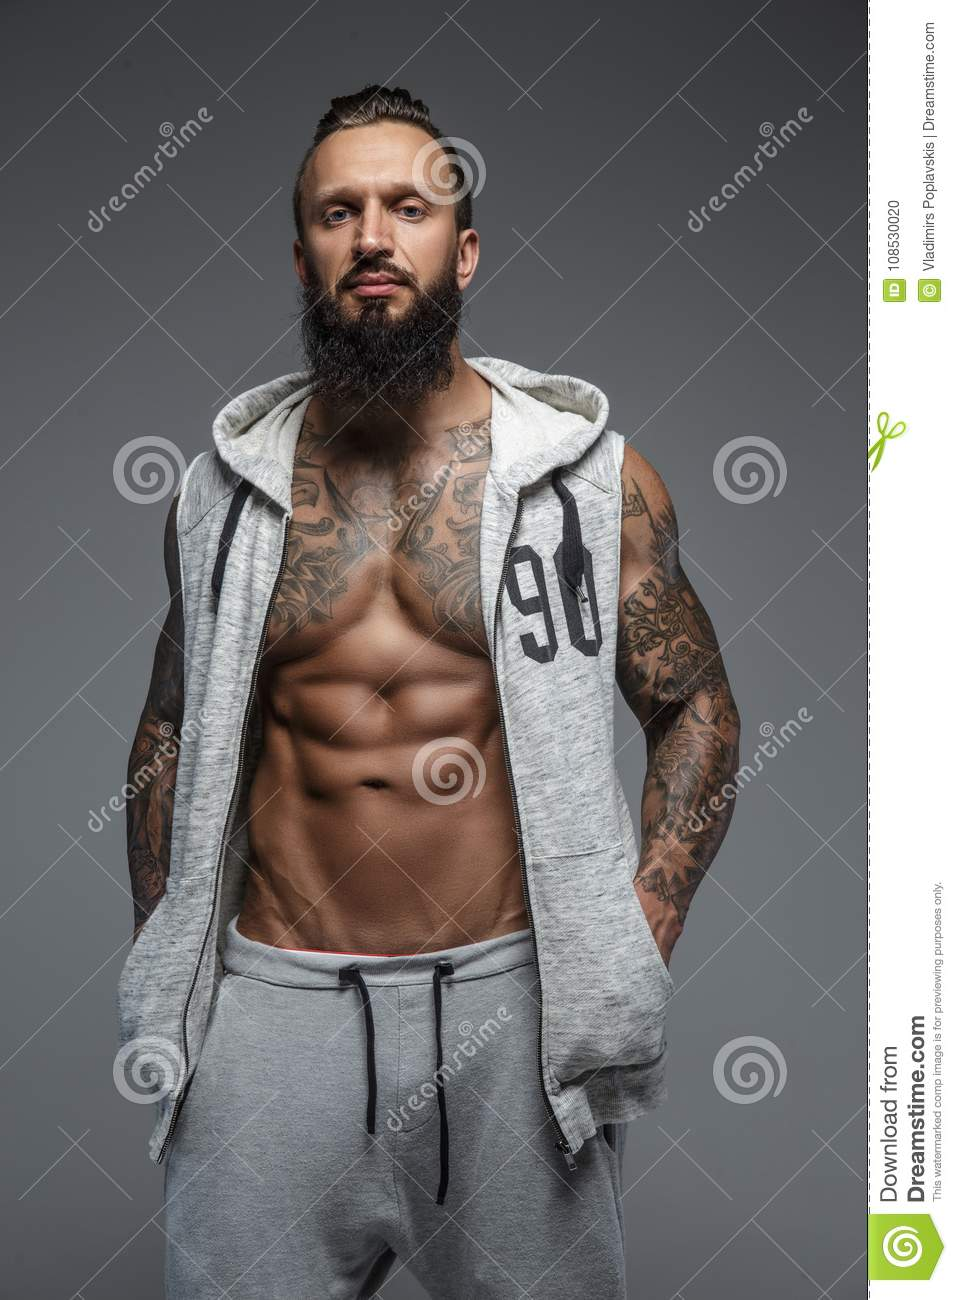 Men with beards tattoos and muscles congratulate, simply